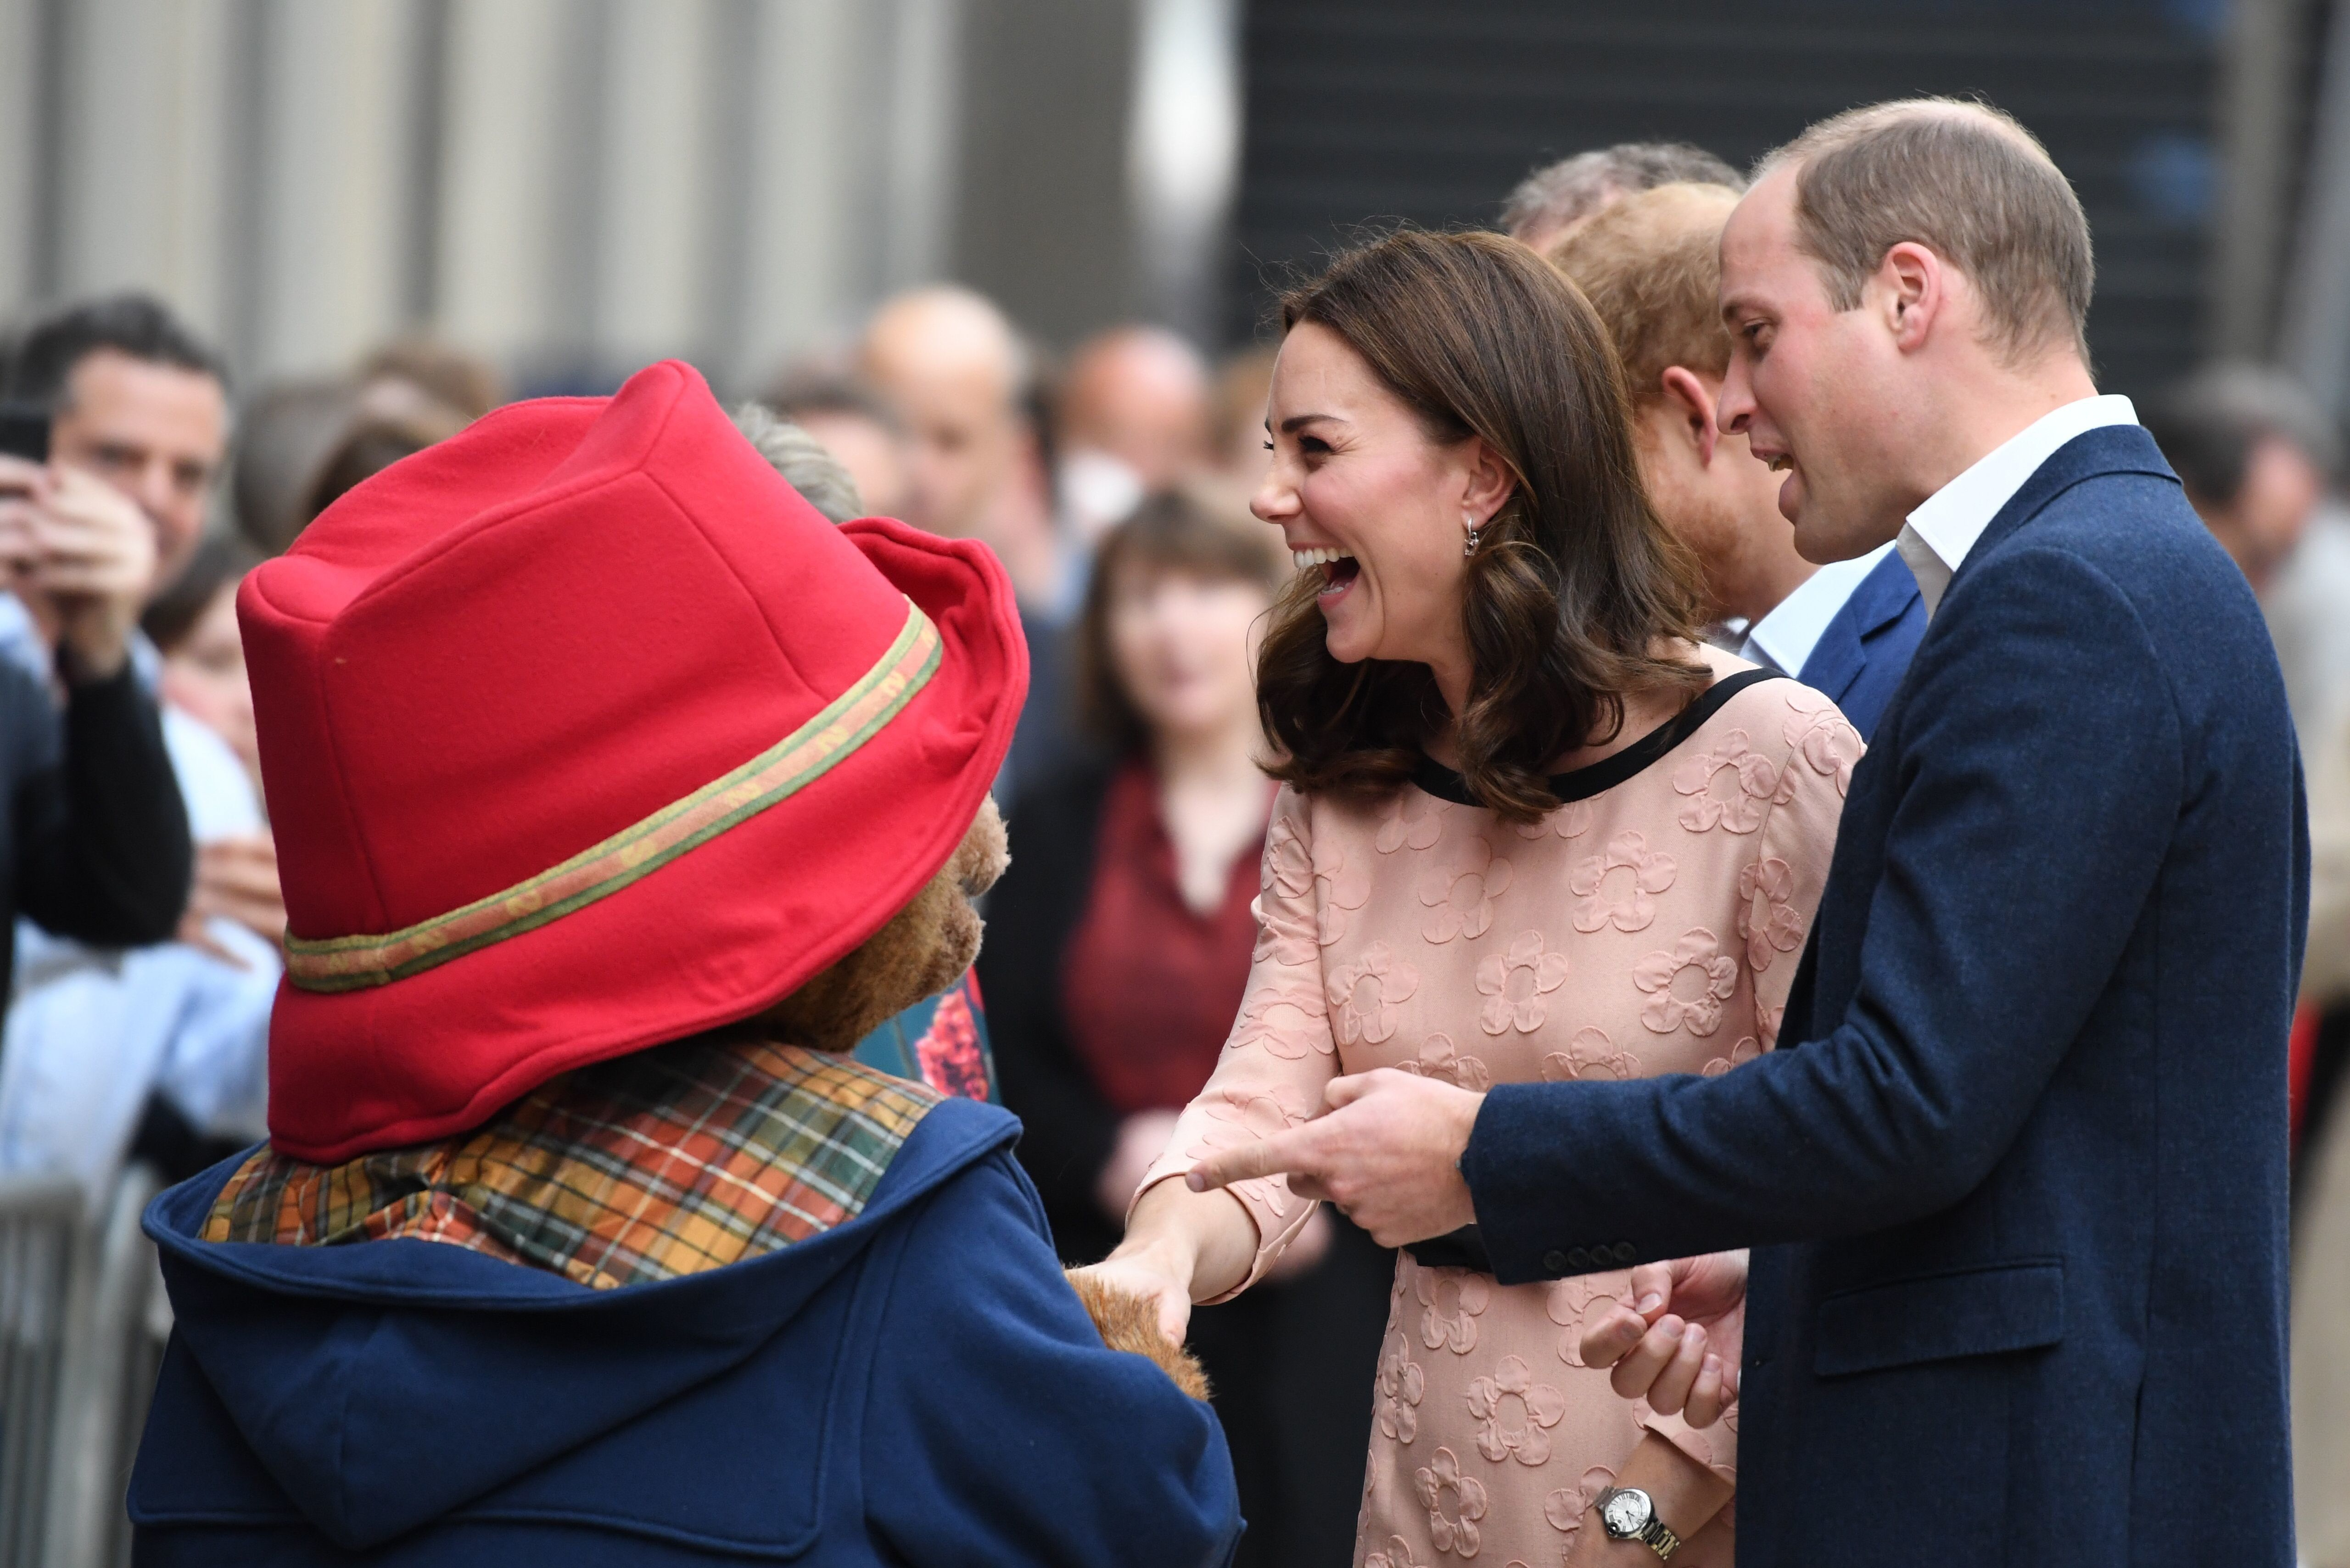 Prince William and Catherine expecting baby in April 2018